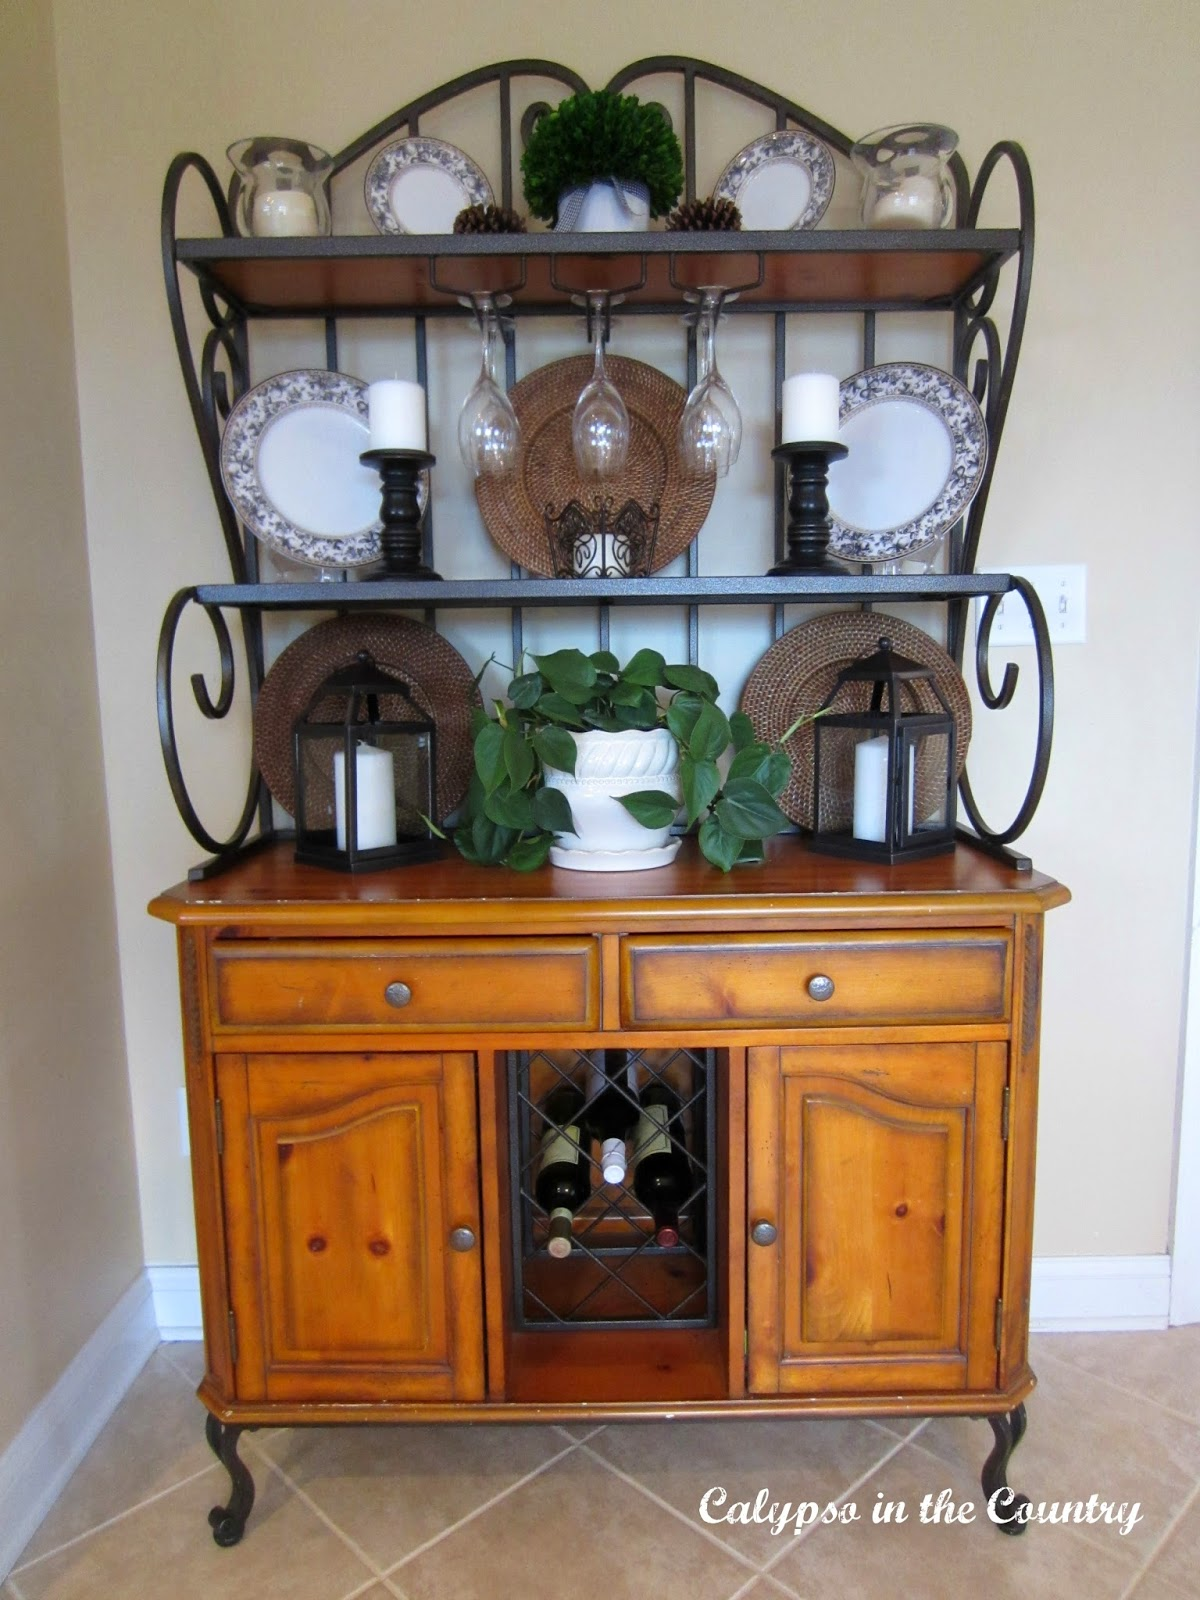 Decorated Baker's Rack in Kitchen - along with shopping sources